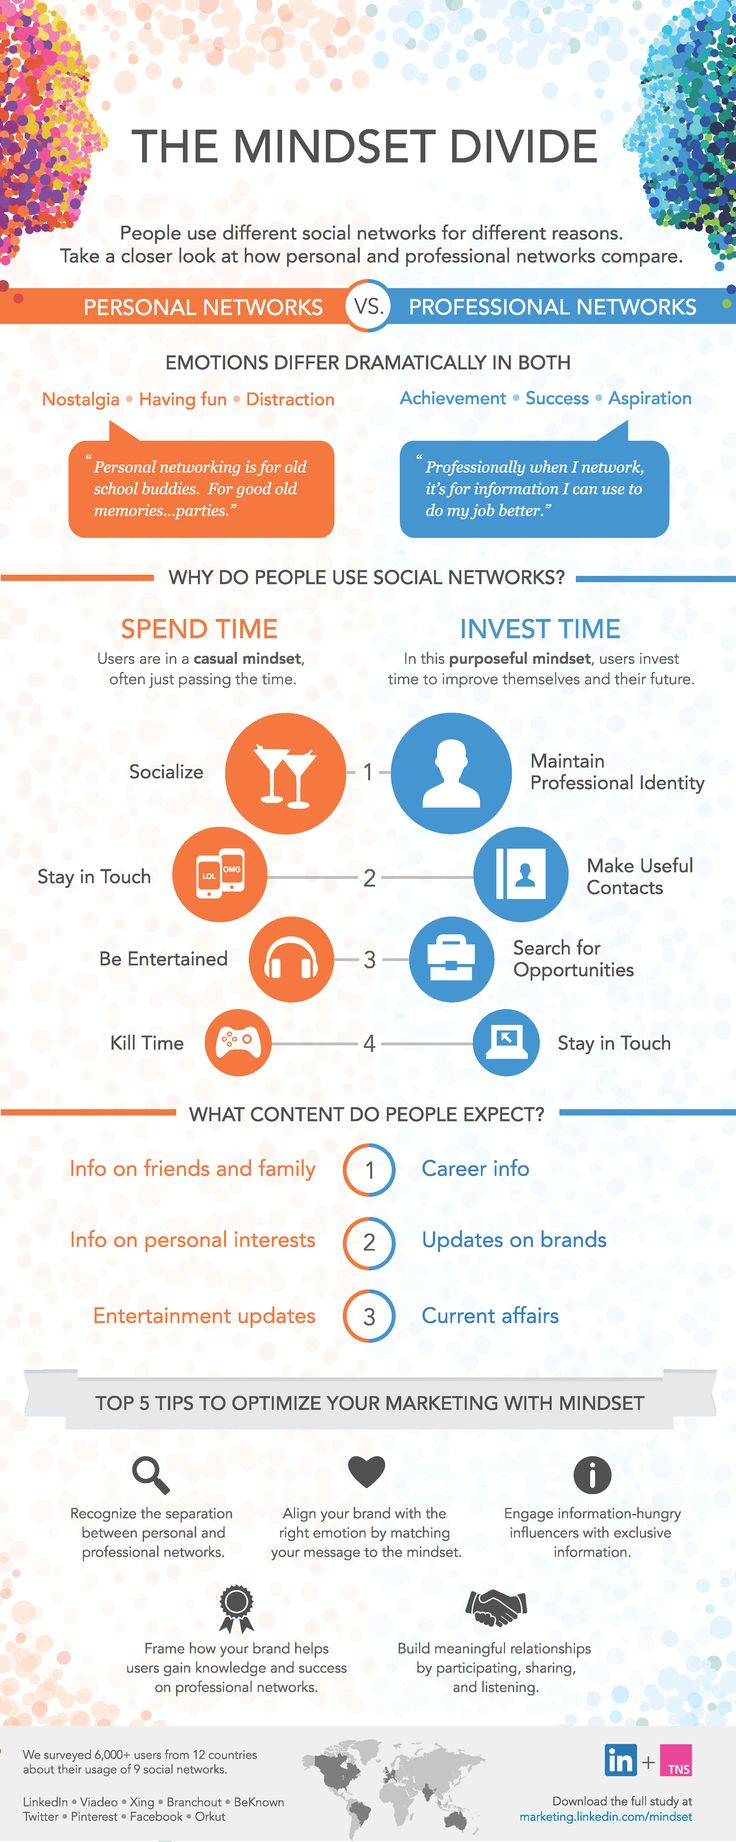 New Study From LinkedIn Shows How User Mindset Affects Social Media Marketing [INFOGRAPHIC]